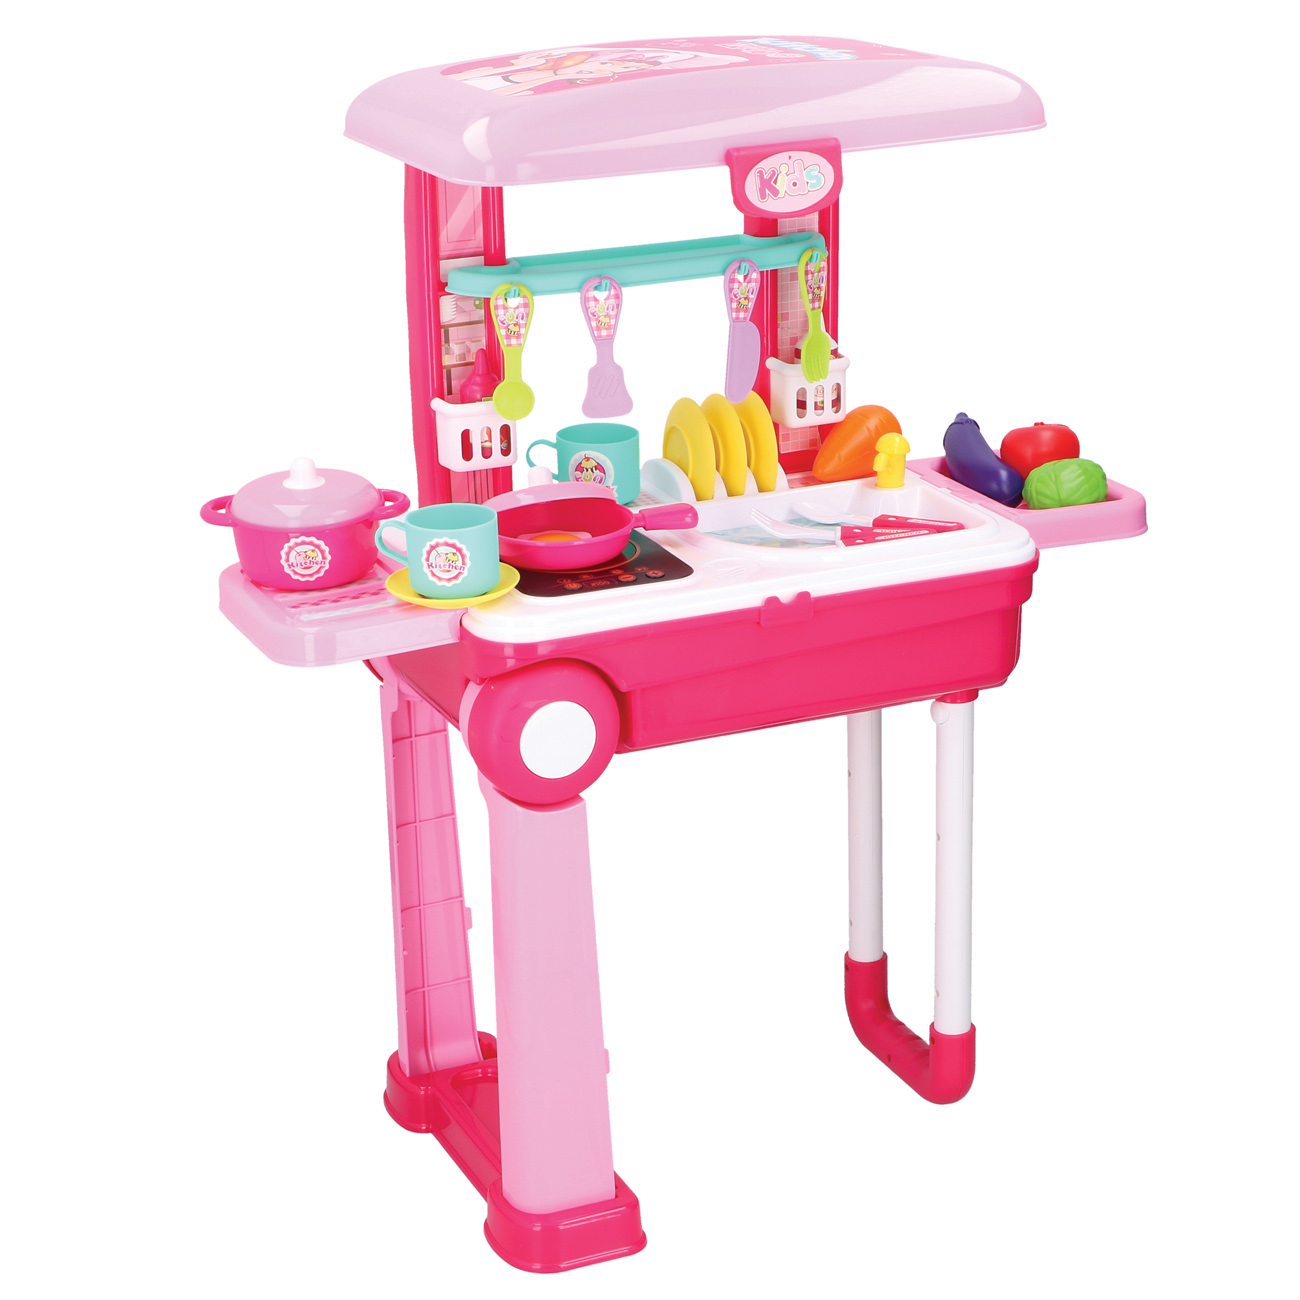 Keukens playset trolley